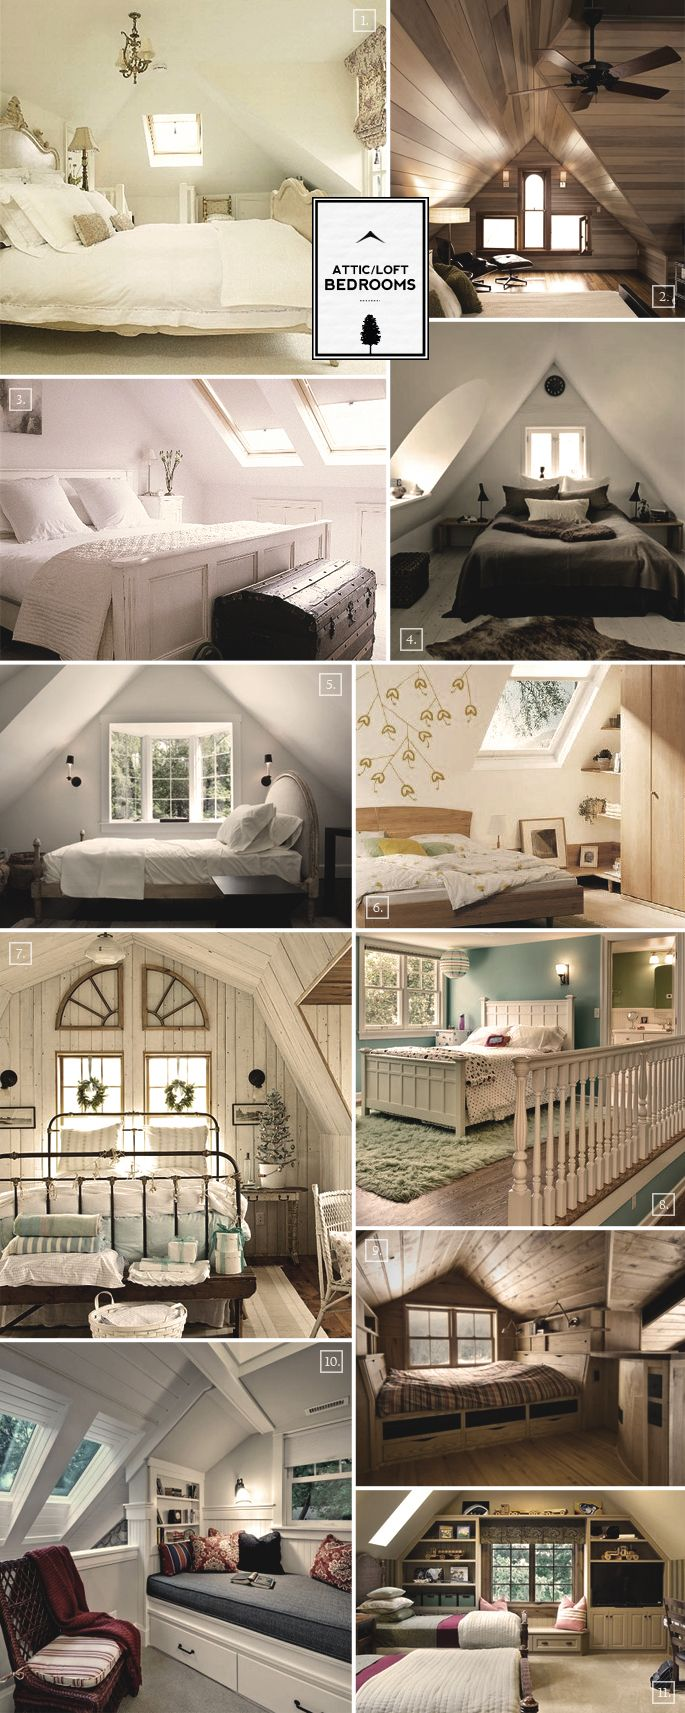 Loft Bedroom For Adults Turning An Attic Into A Bedroom Ideas And Designs Attic Master